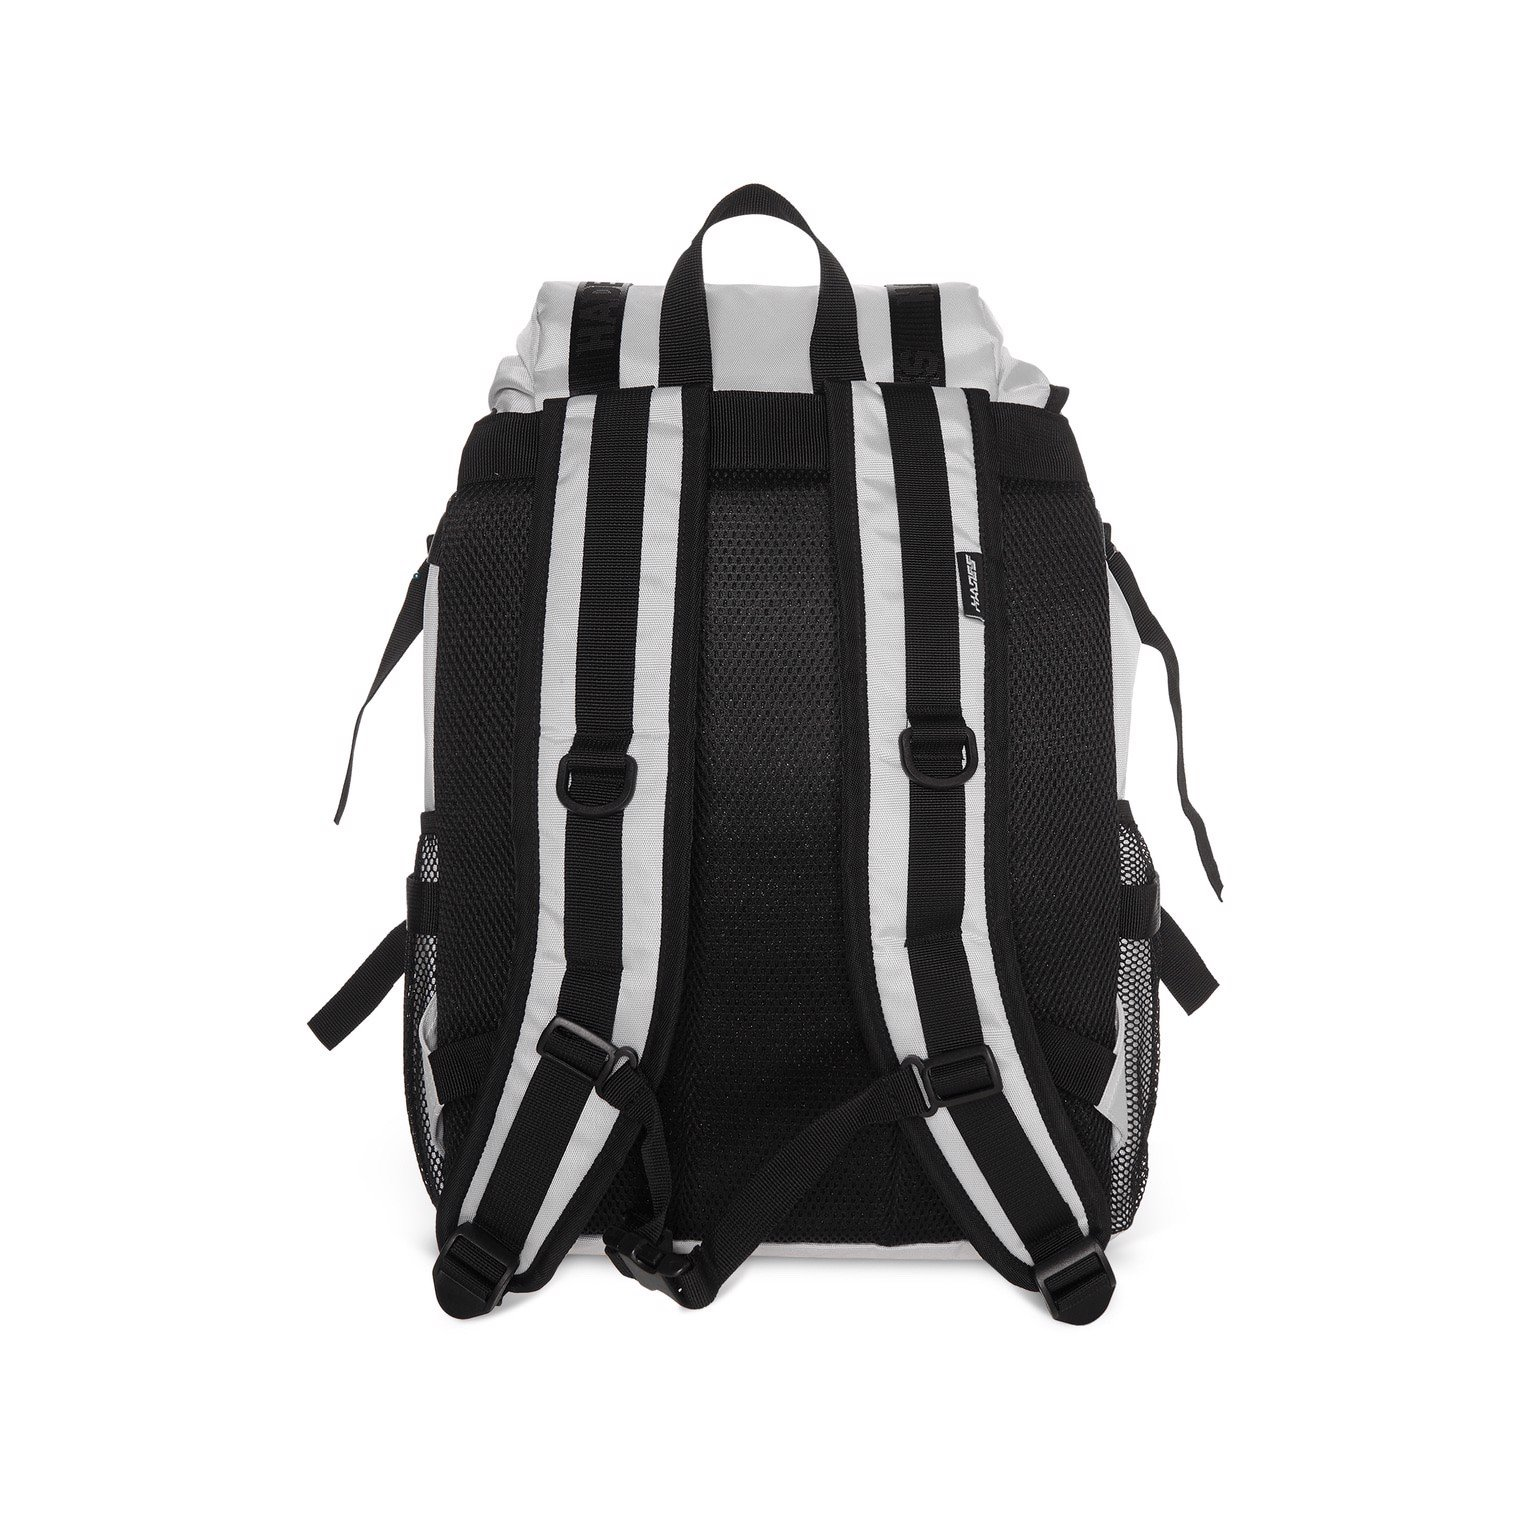 SS2 BACKPACK.